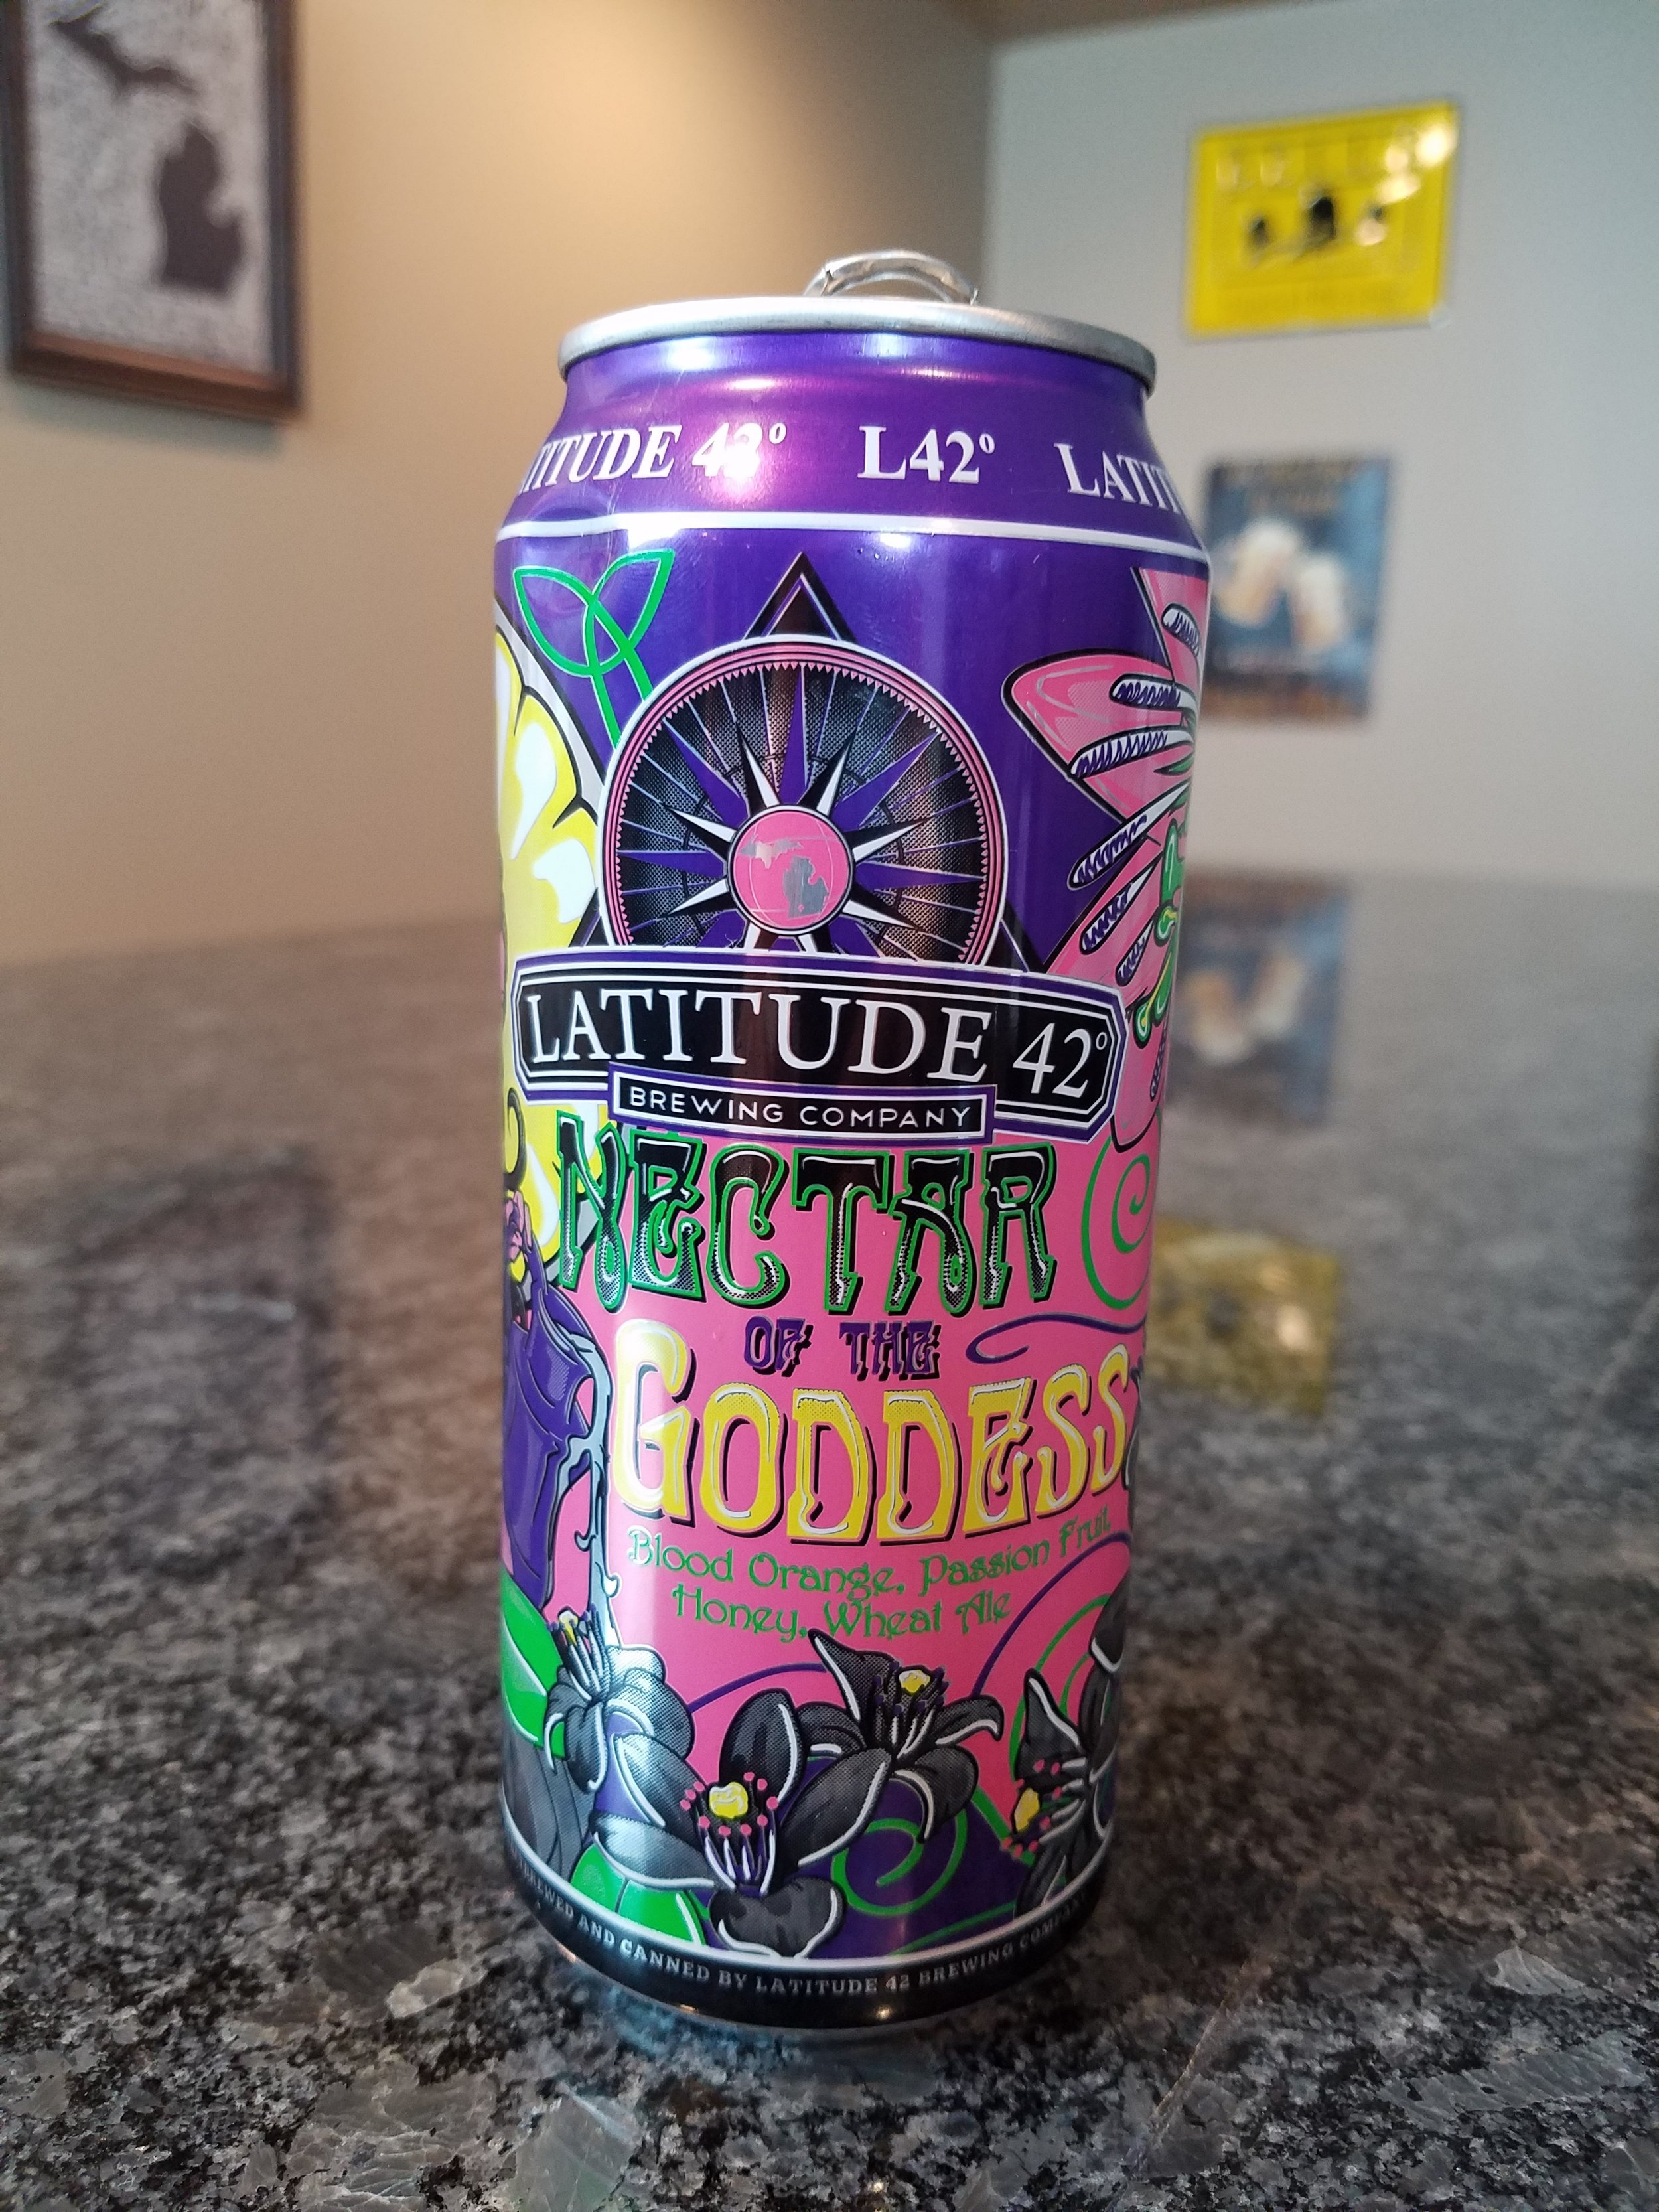 Nectar of the Goddess 4.8% - Want to see the Video review? Click on the image.